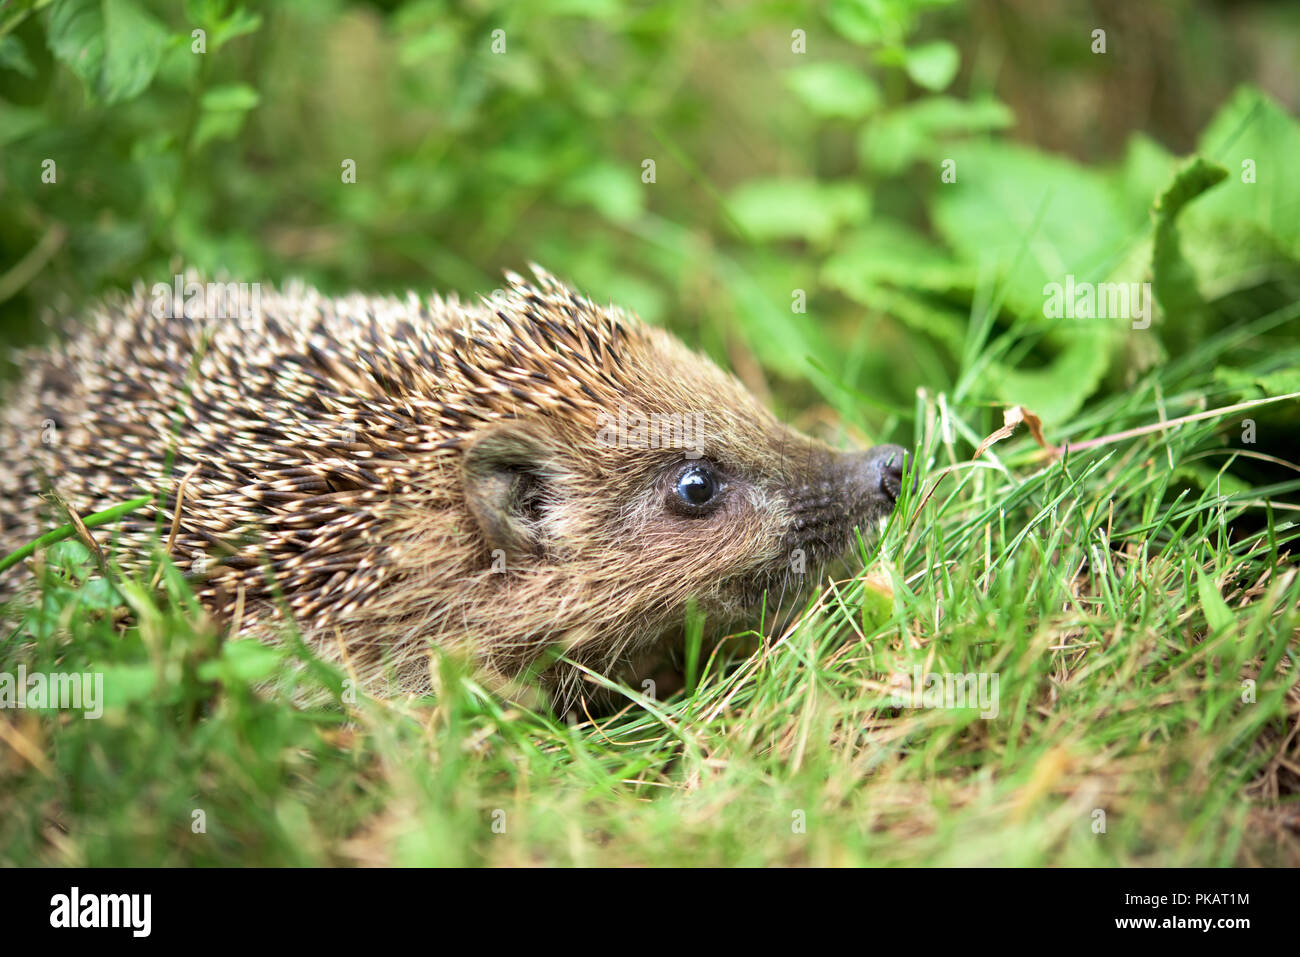 Small cute hedgehog walking in a grass - Stock Image